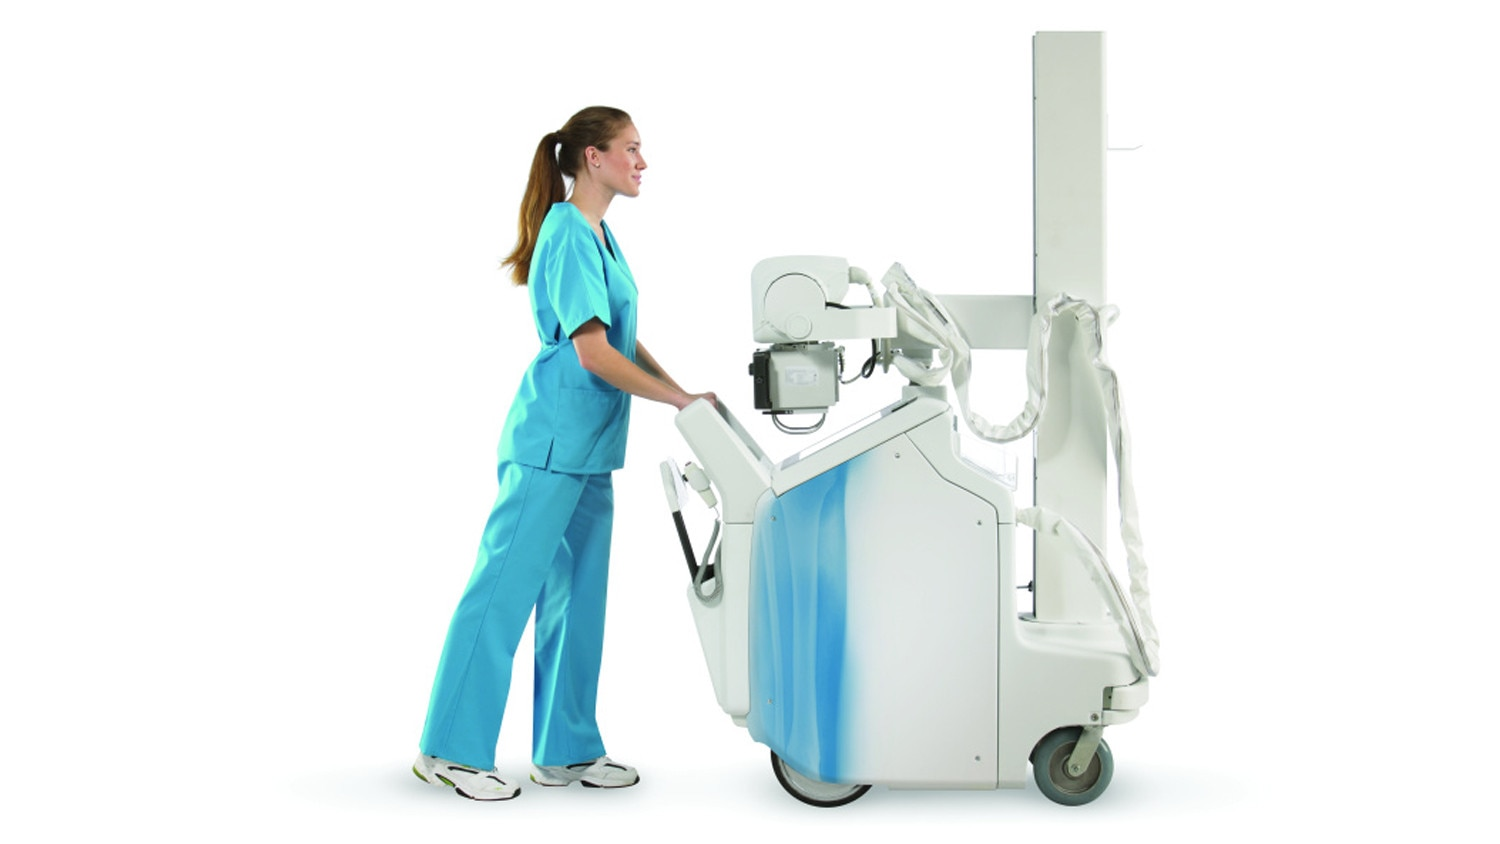 education-product-education-clinical-tip-applications-x-ray-optima-xr200amx-nurse.jpg